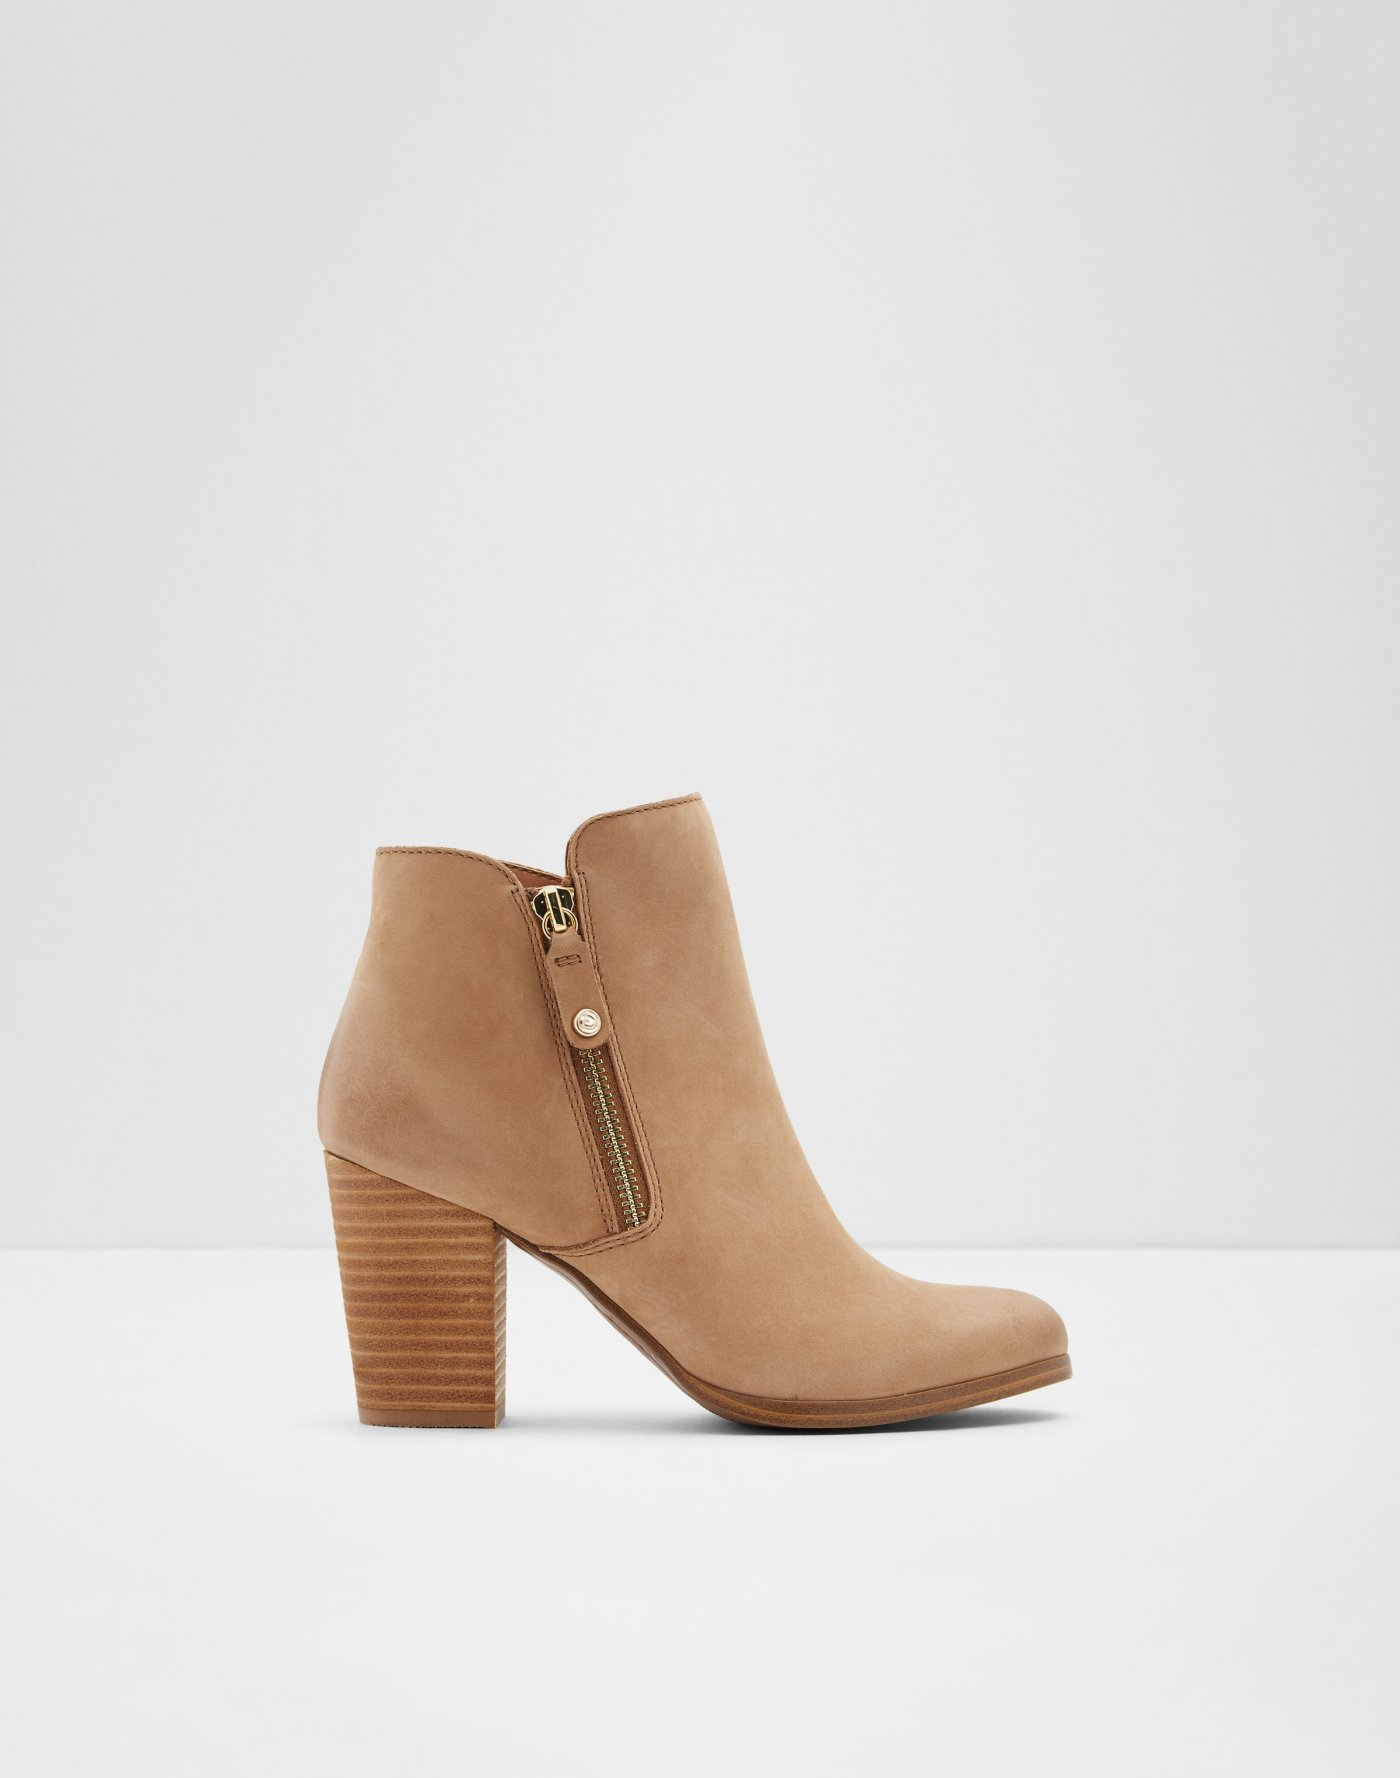 f2031528072 Ankle boots | Aldoshoes.com US